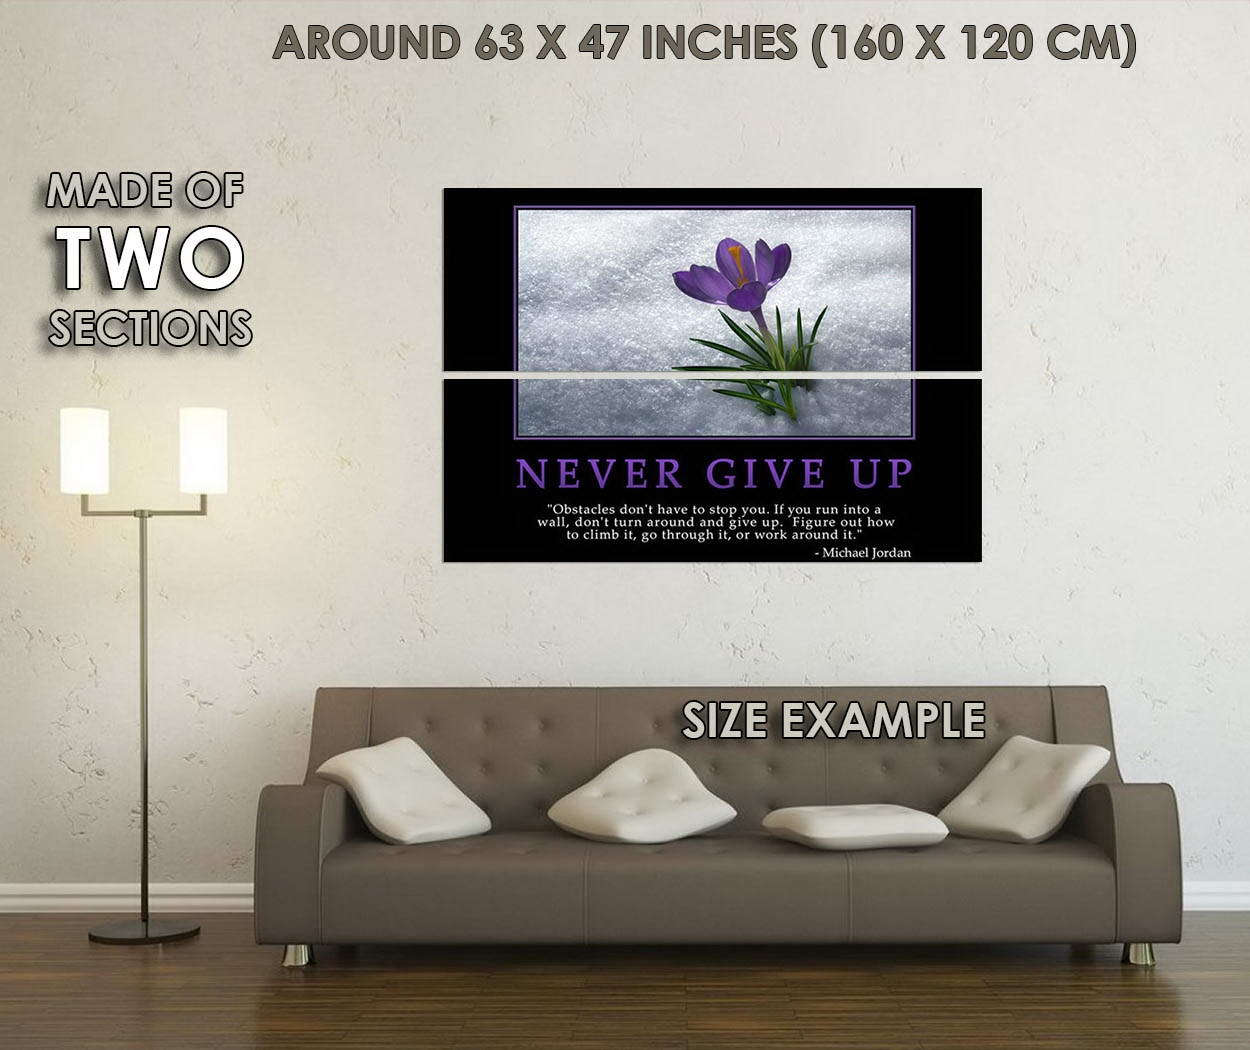 10052-Never-Give-Up-Motivational-Quote-LAMINATED-POSTER-CA thumbnail 6